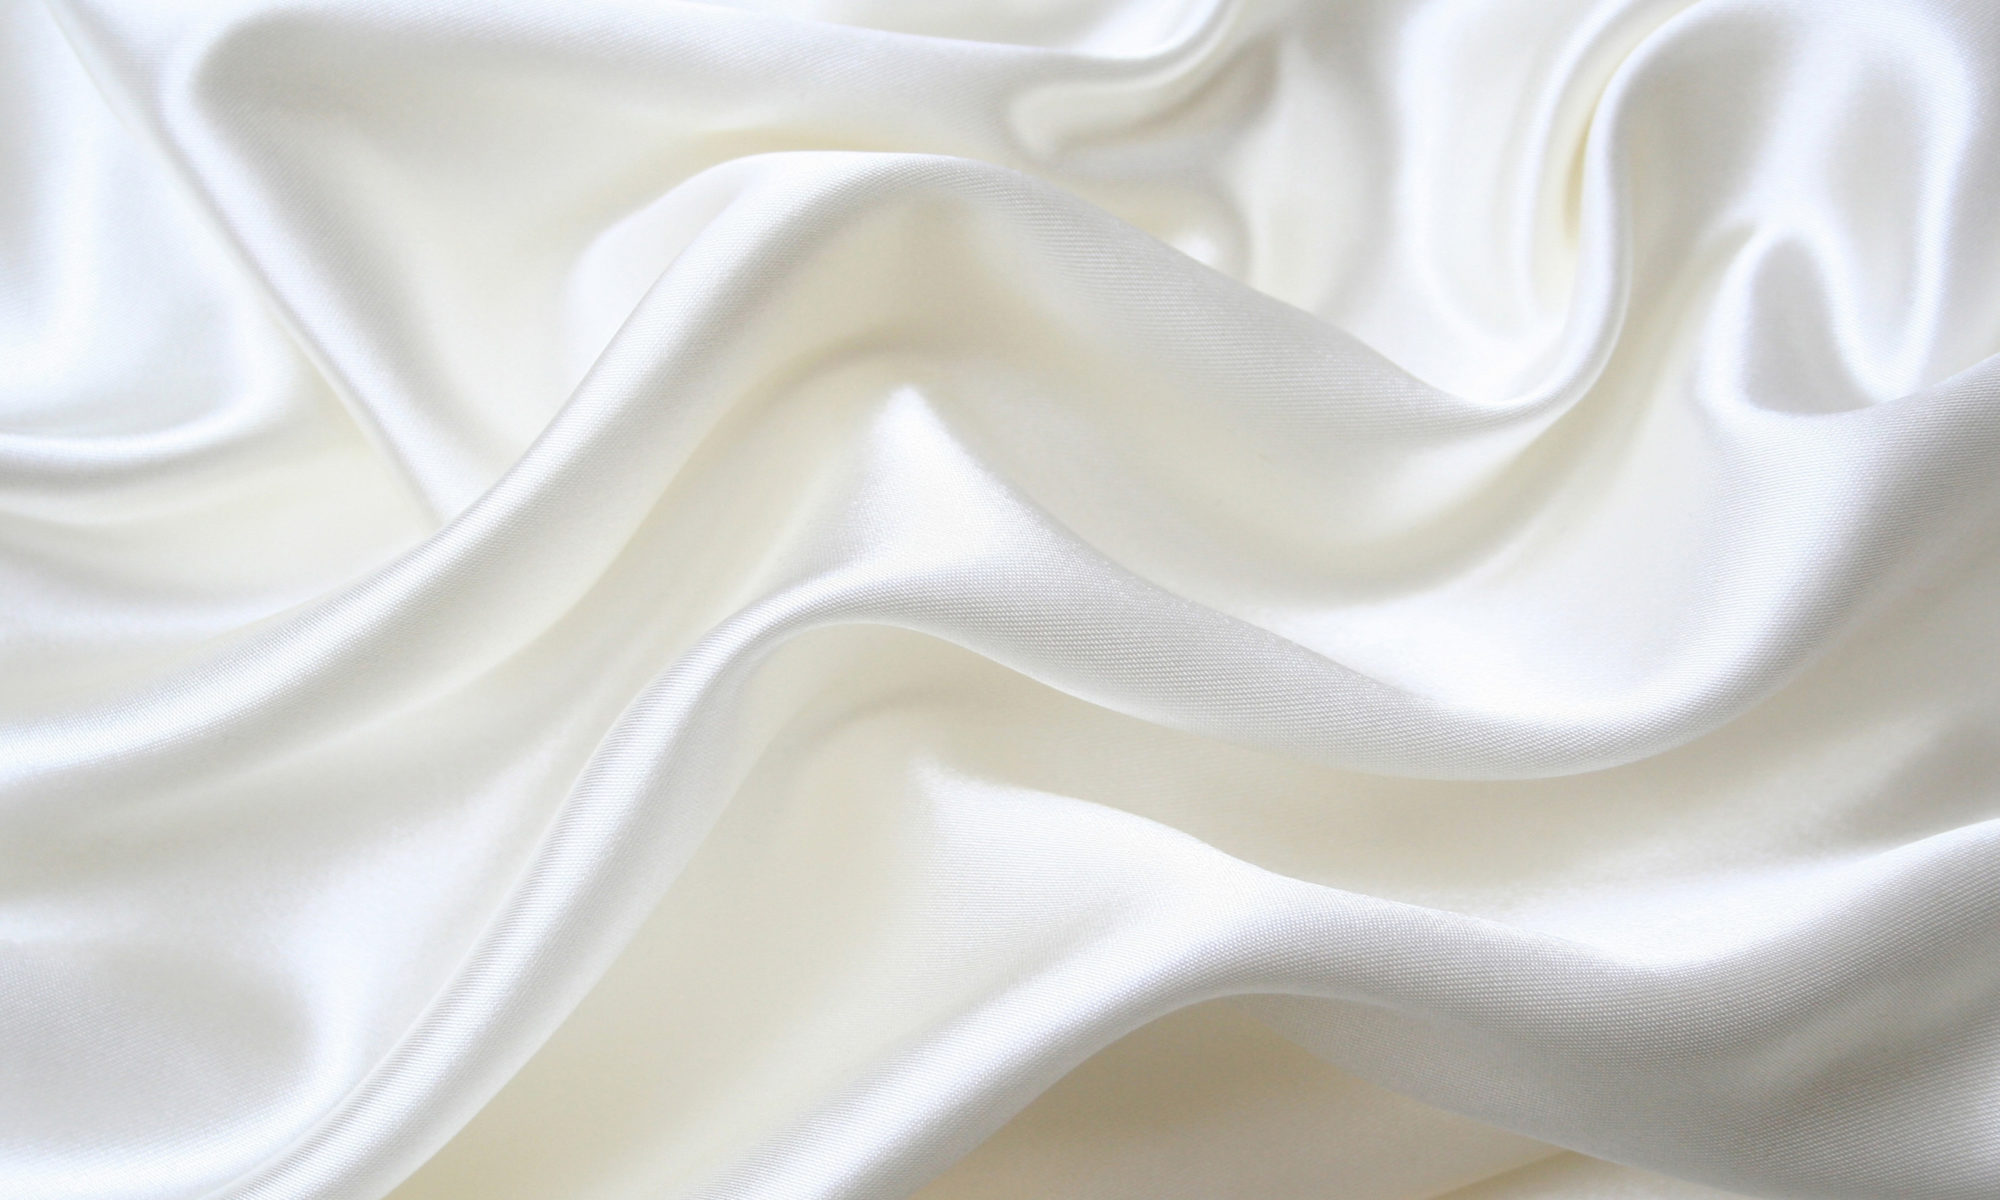 White_Satin_Fabric_Background